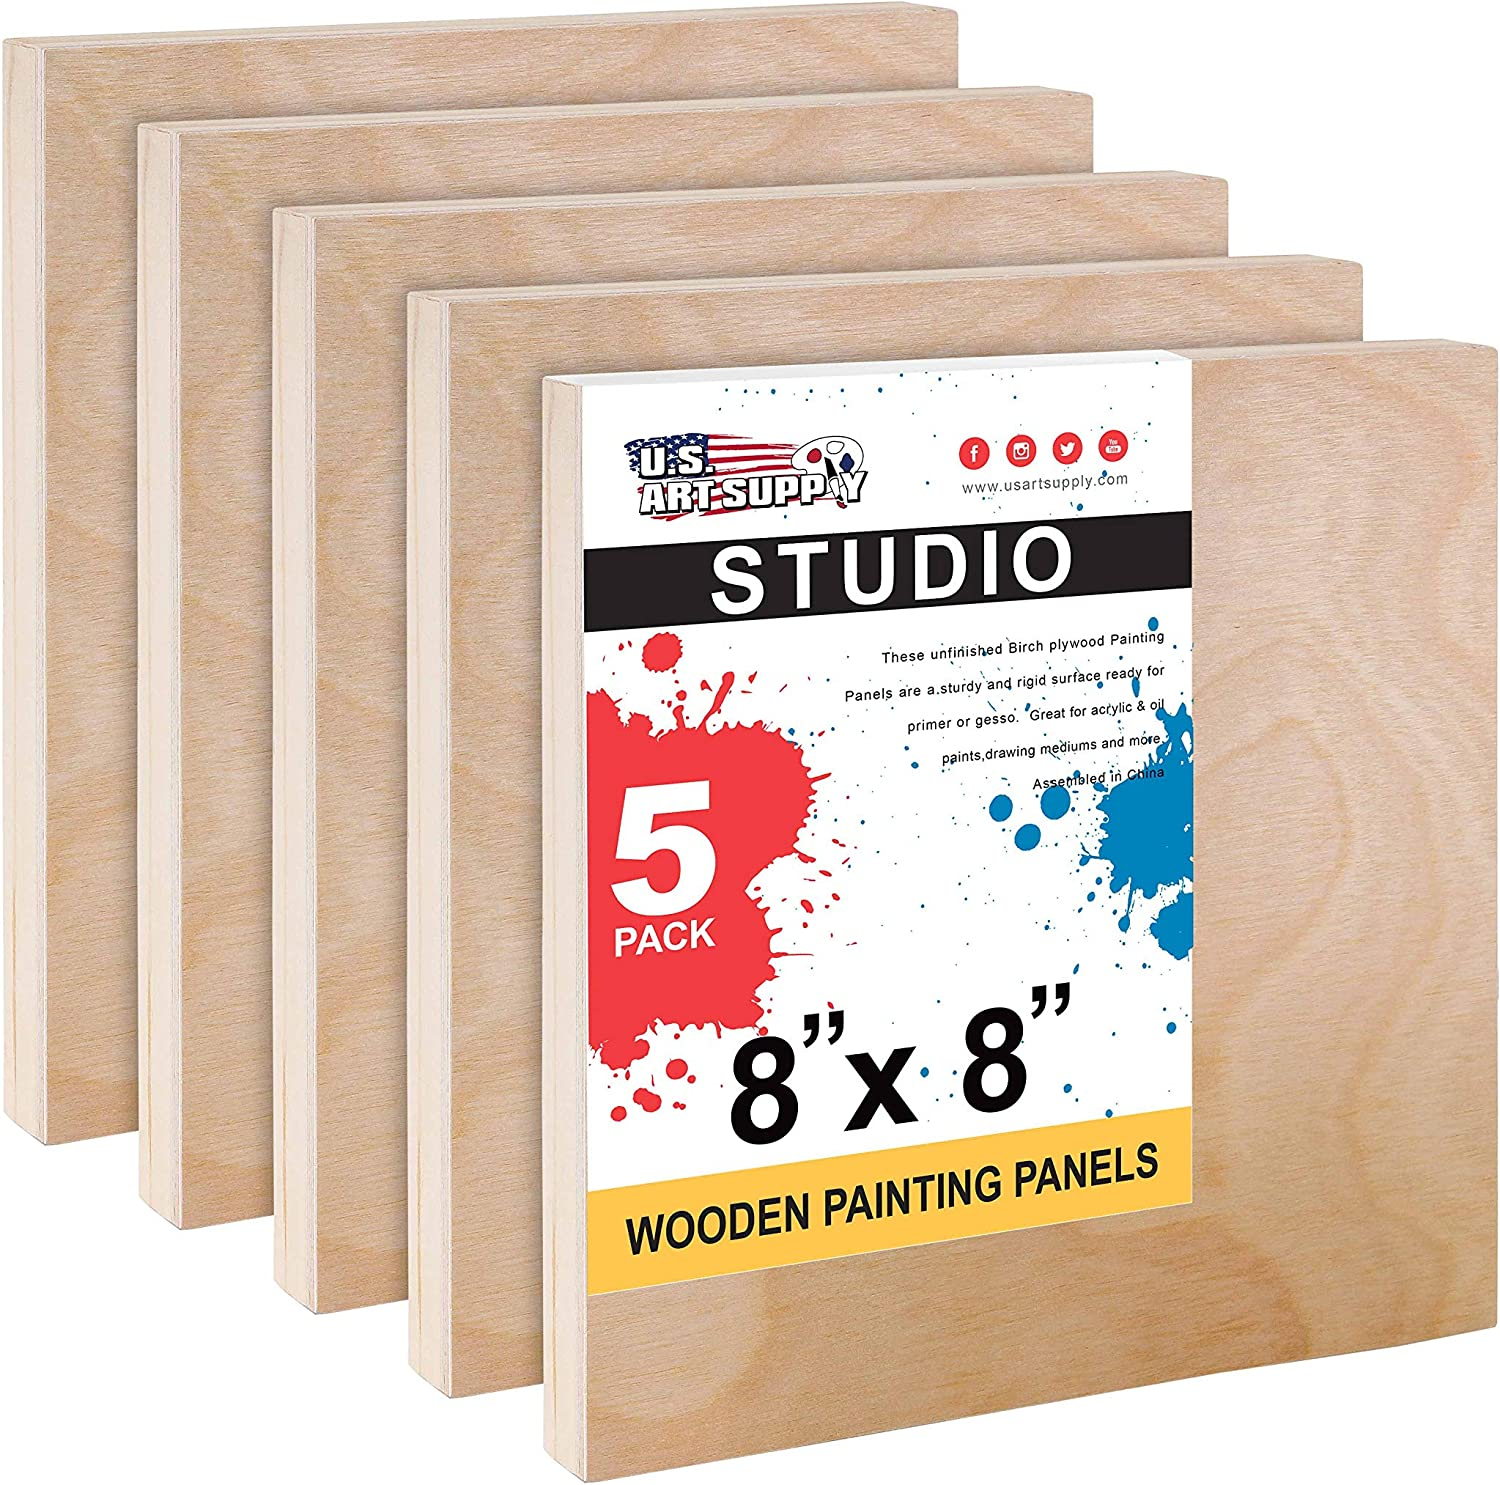 Oil Pack of 4 Studio 3//4 Deep Cradle - Artist Wooden Wall Canvases Encaustic U.S Painting Mixed-Media Craft Watercolor Acrylic Art Supply 9 x 12 Birch Wood Paint Pouring Panel Boards